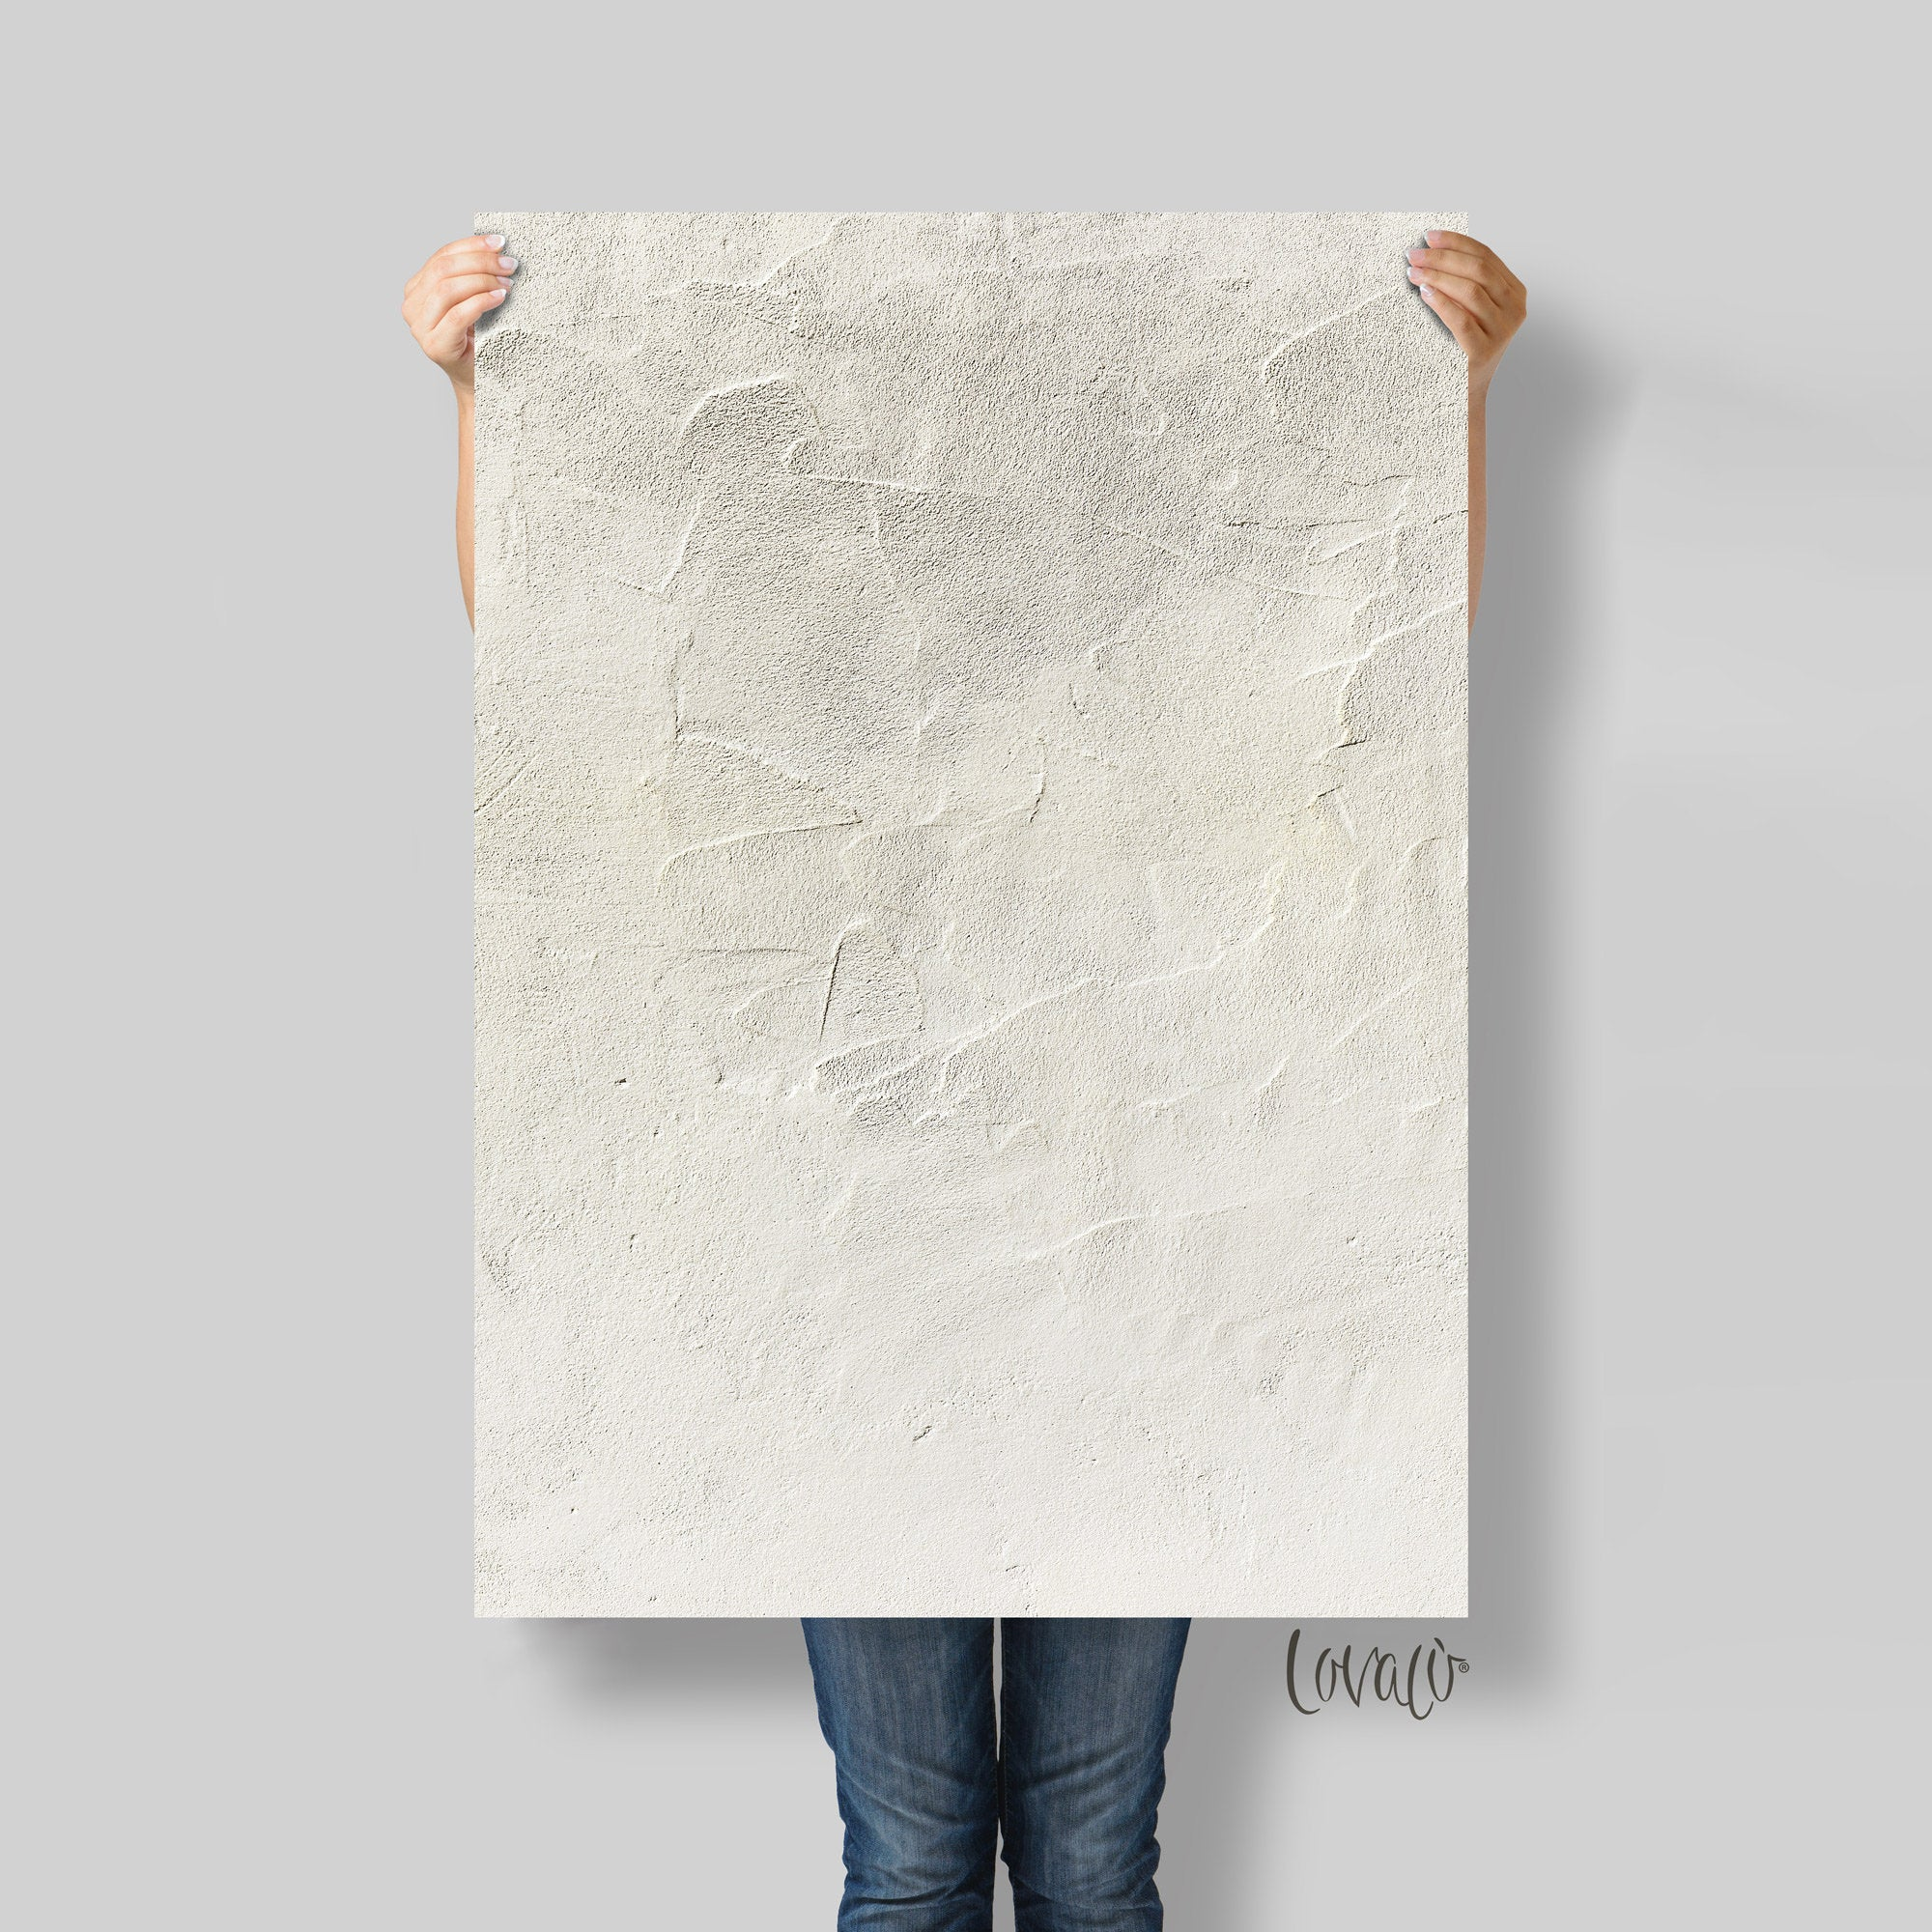 Old stucco wall Vinyl Photography Backdrop for Product, Instagram, Flat lay & Food Photography - Lov2049